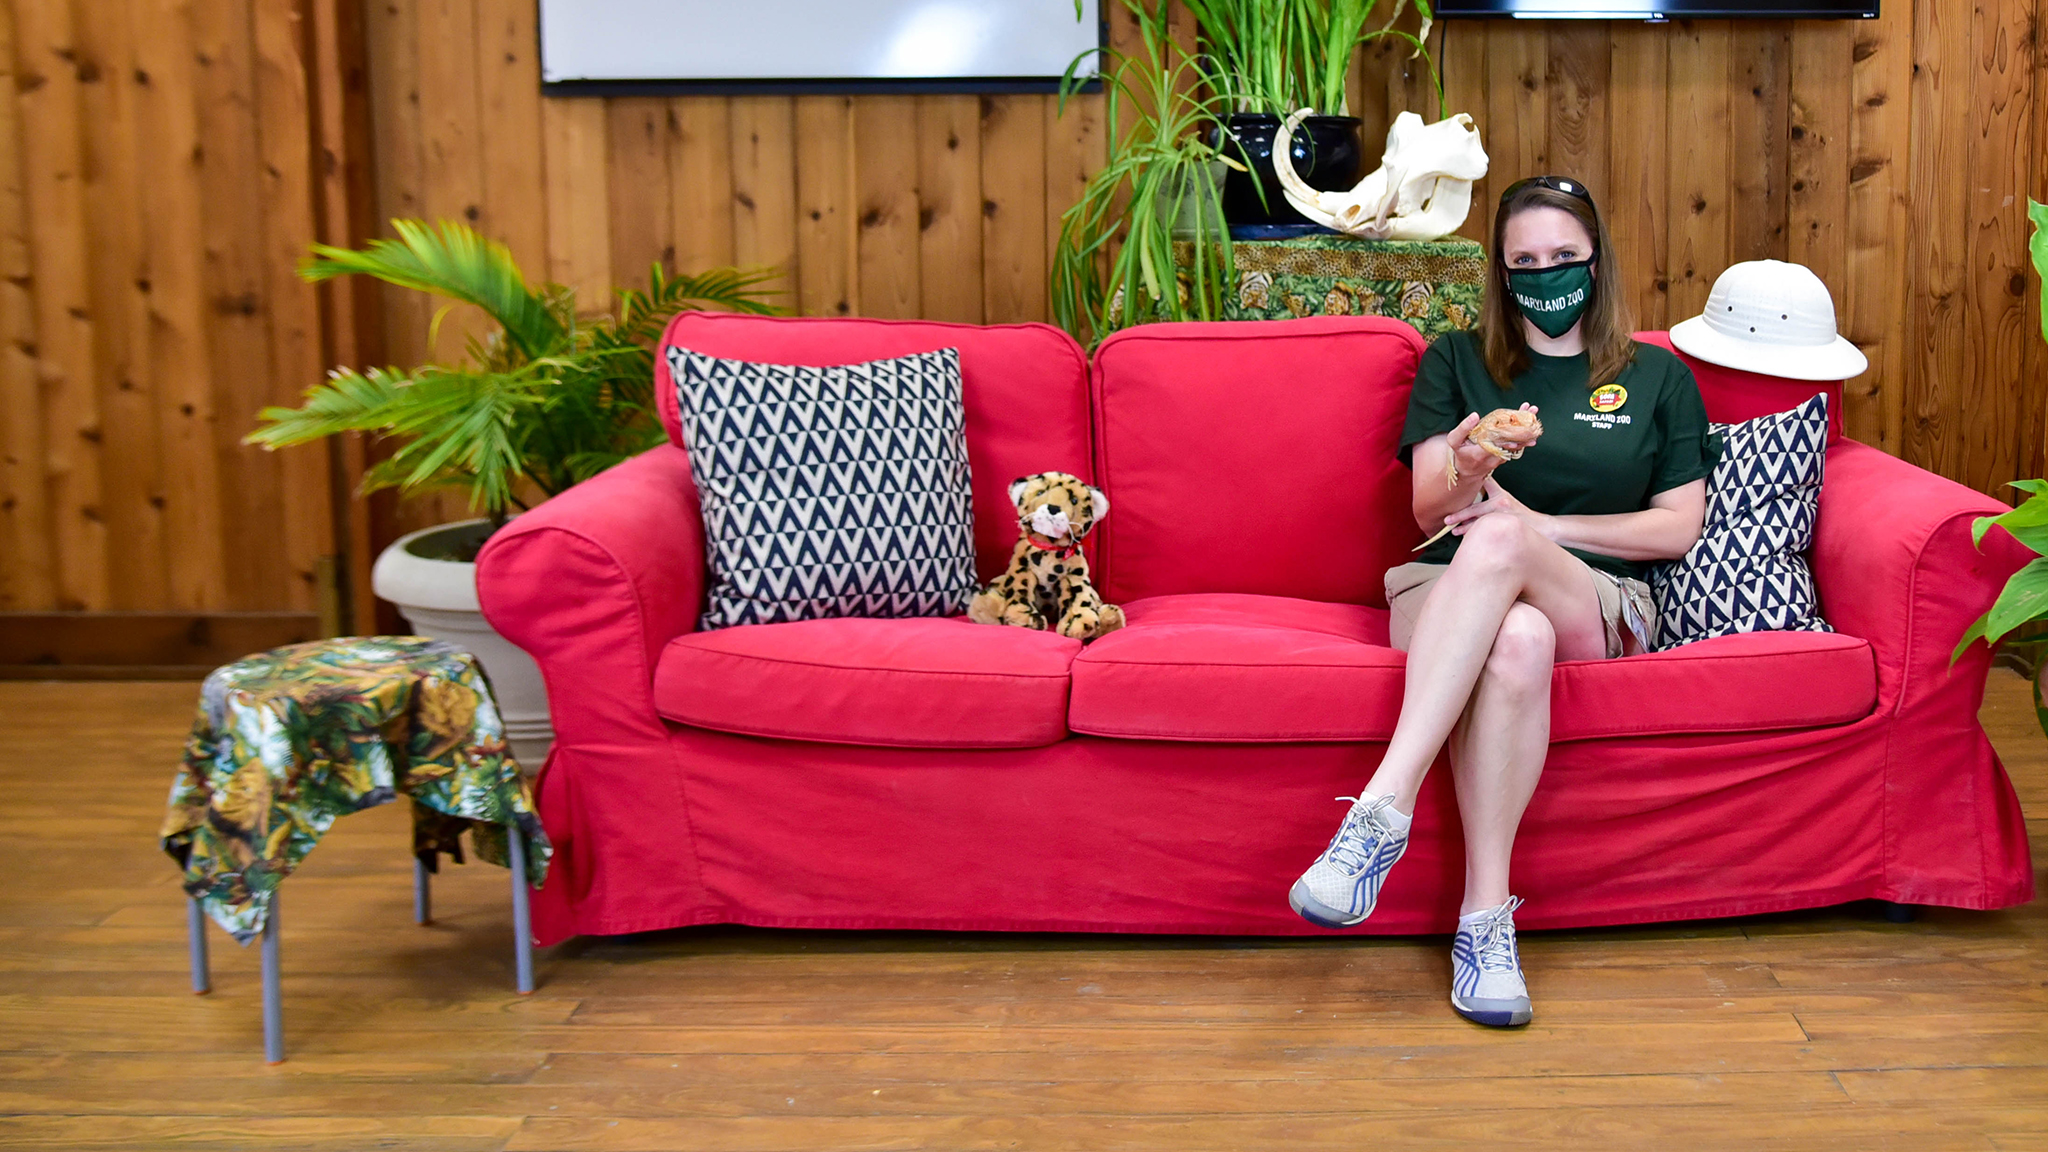 zoo educator with bearded dragon on couch